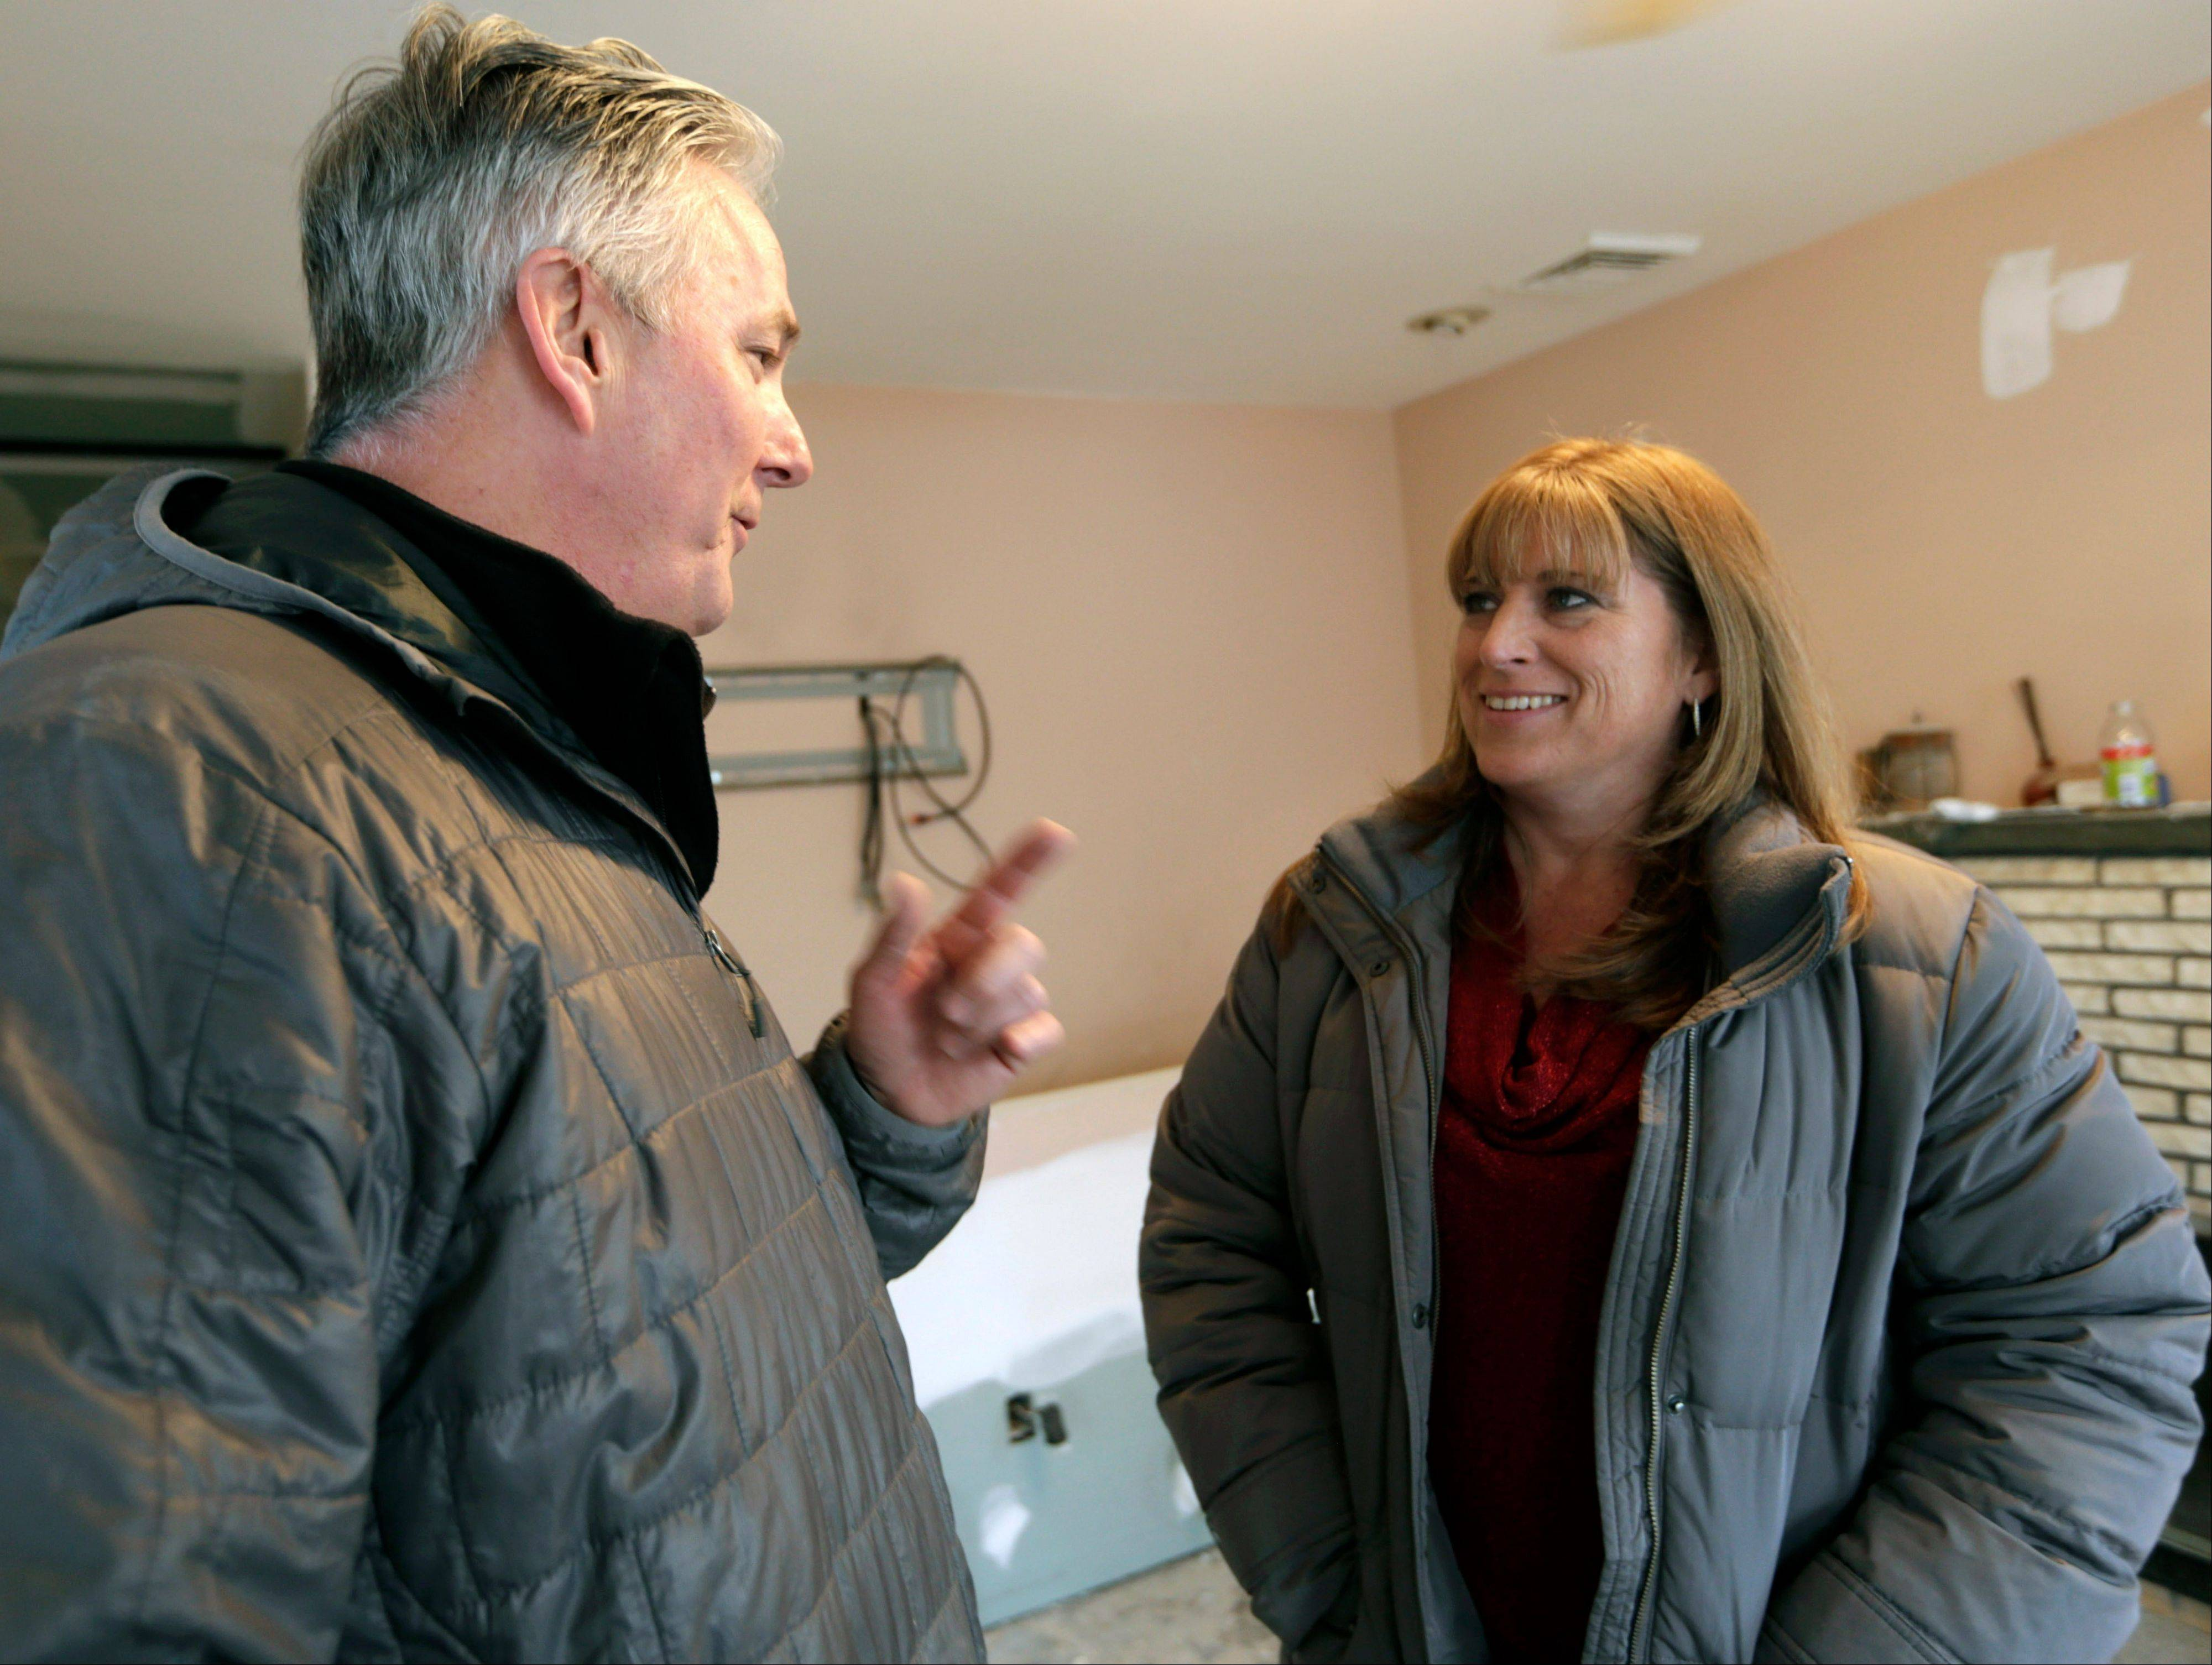 Donald Denihan, left, talks with Kerry Ann Troy during a visit to the Troy family house, under renovation after it was seriously damaged during Superstorm Sandy, in Long Beach, N.Y., Wednesday, Dec. 12, 2012. The Troys are living in a house in Point Lookout, N.Y., donated by strangers who found them. Denihan, who suffered several near-death experiences that convinced him his purpose in life was to help others, is paying for repairs. Denihan has instructed his workers to have the house ready by Christmas.